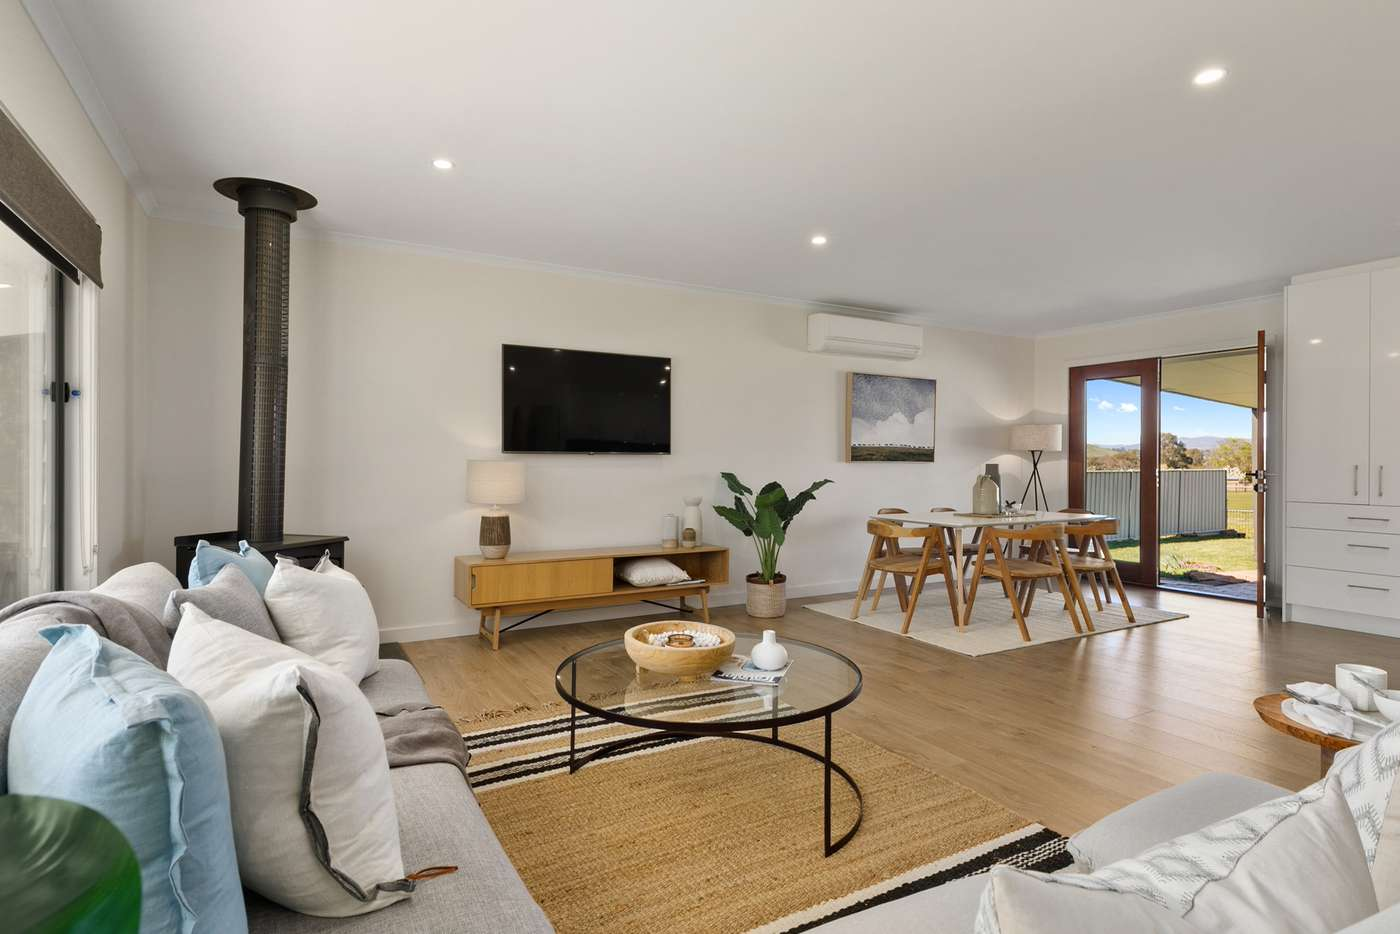 Main view of Homely house listing, 22 Reynolds Street, Mansfield VIC 3722